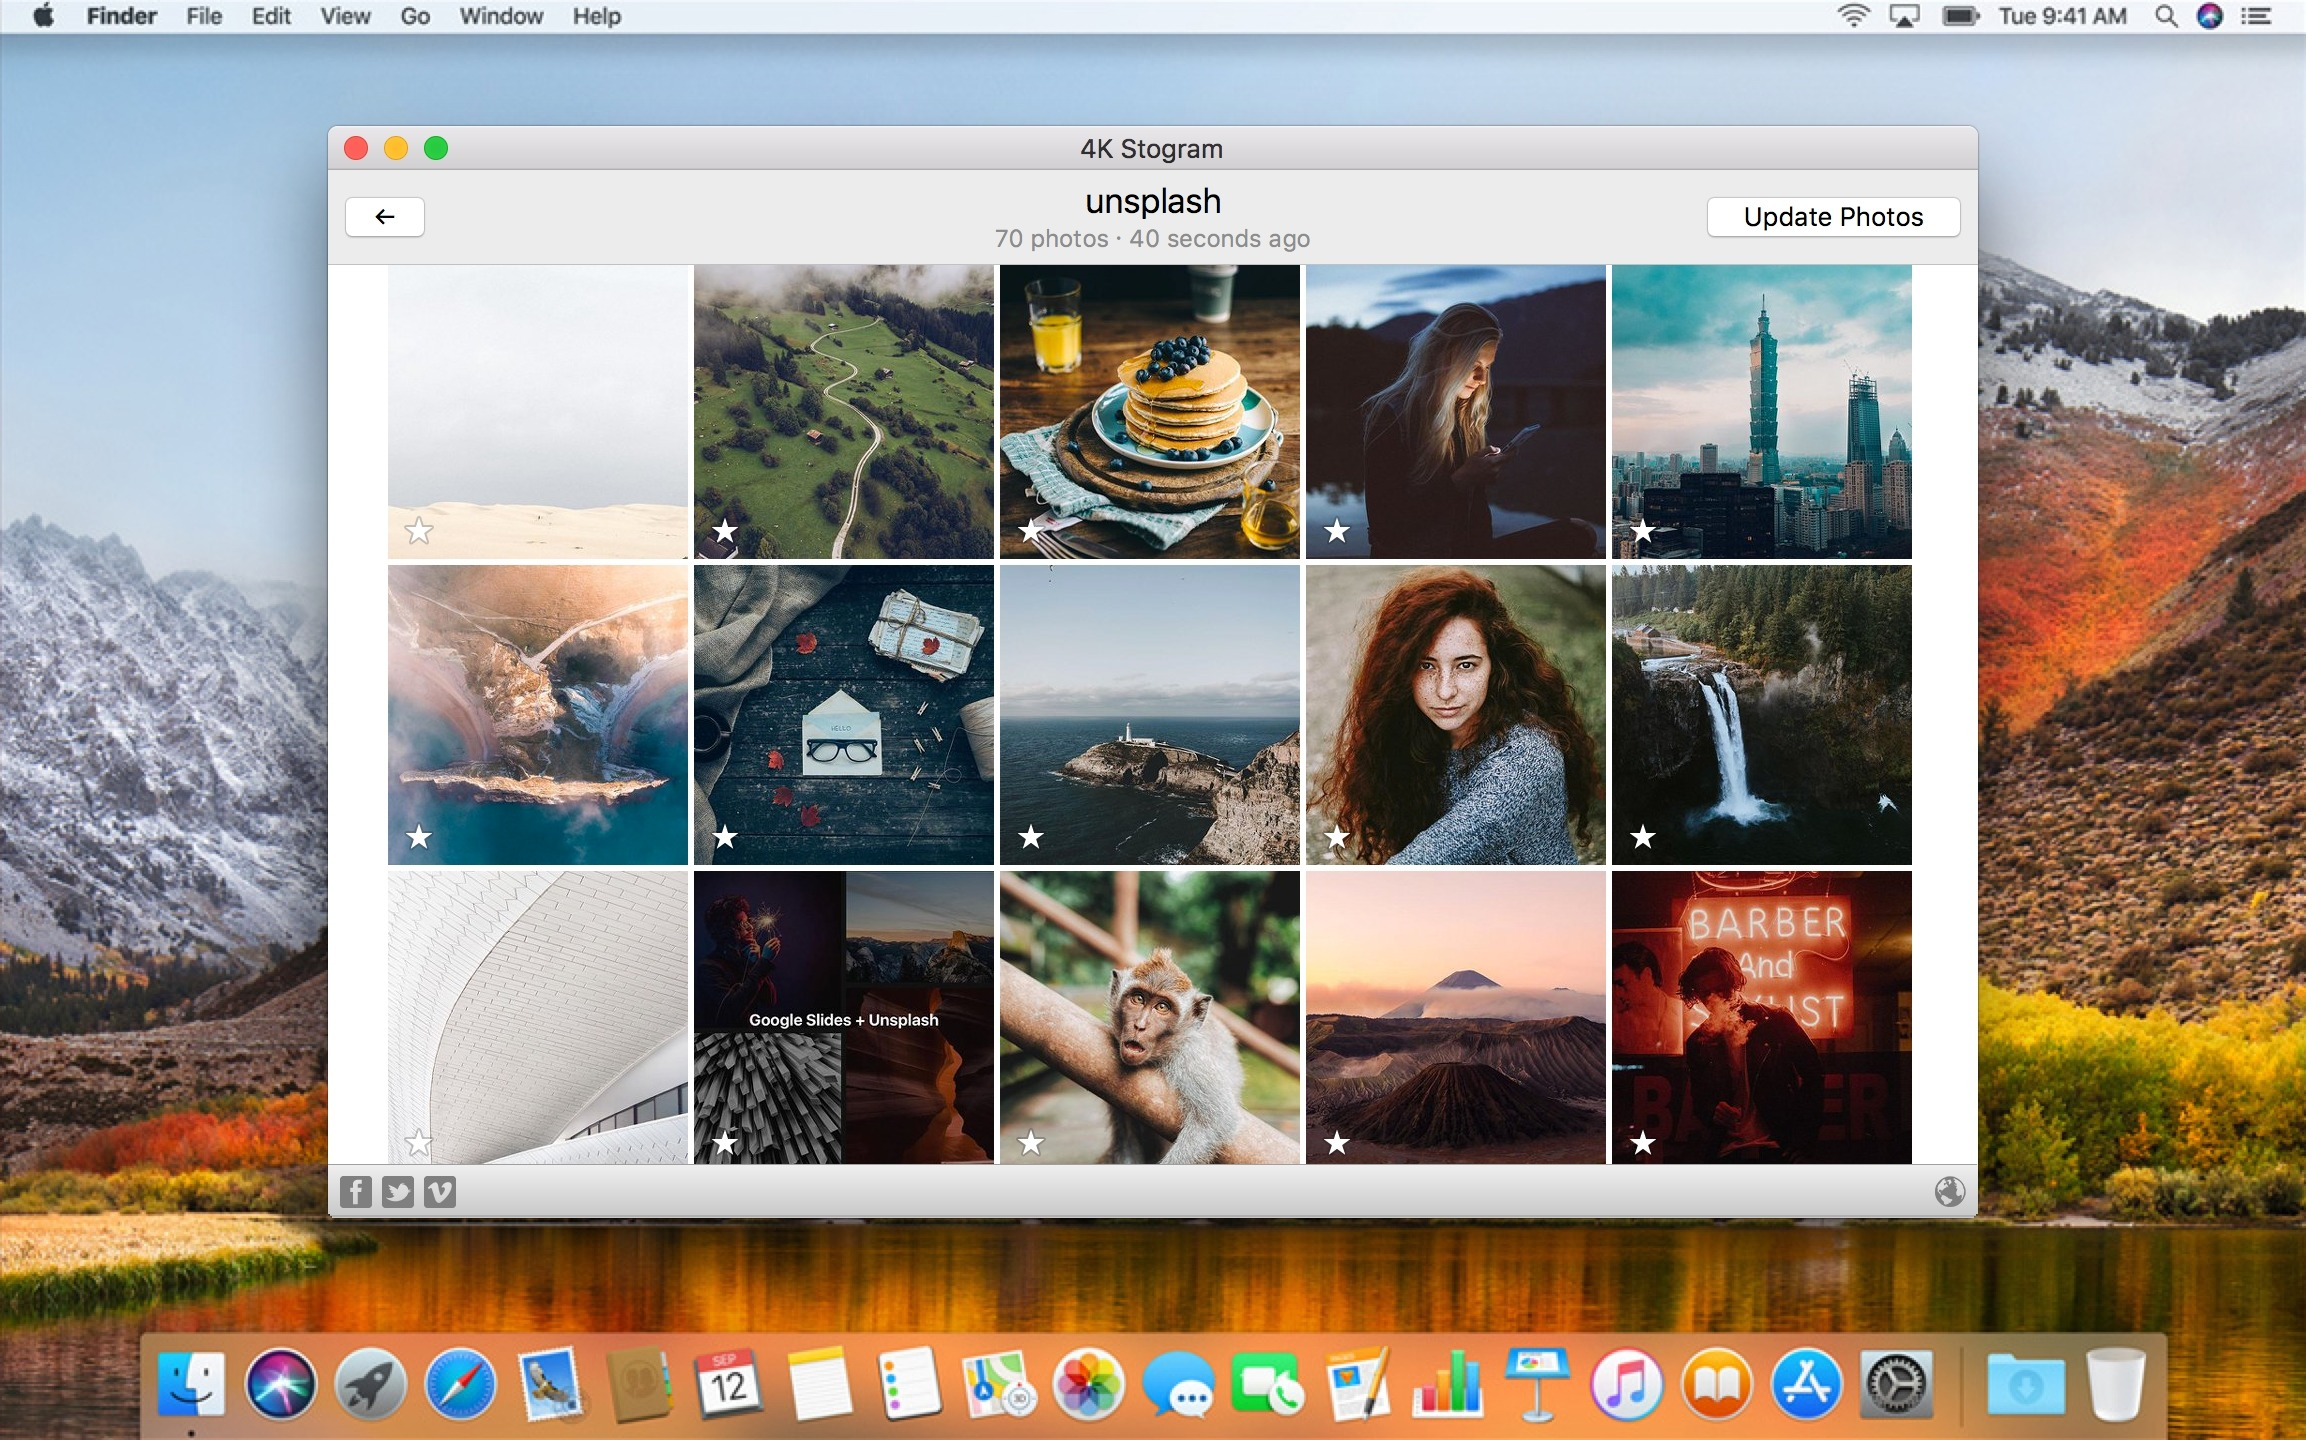 4K Stogram for Mac 2.6.9 破解版 - Instagram下载工具